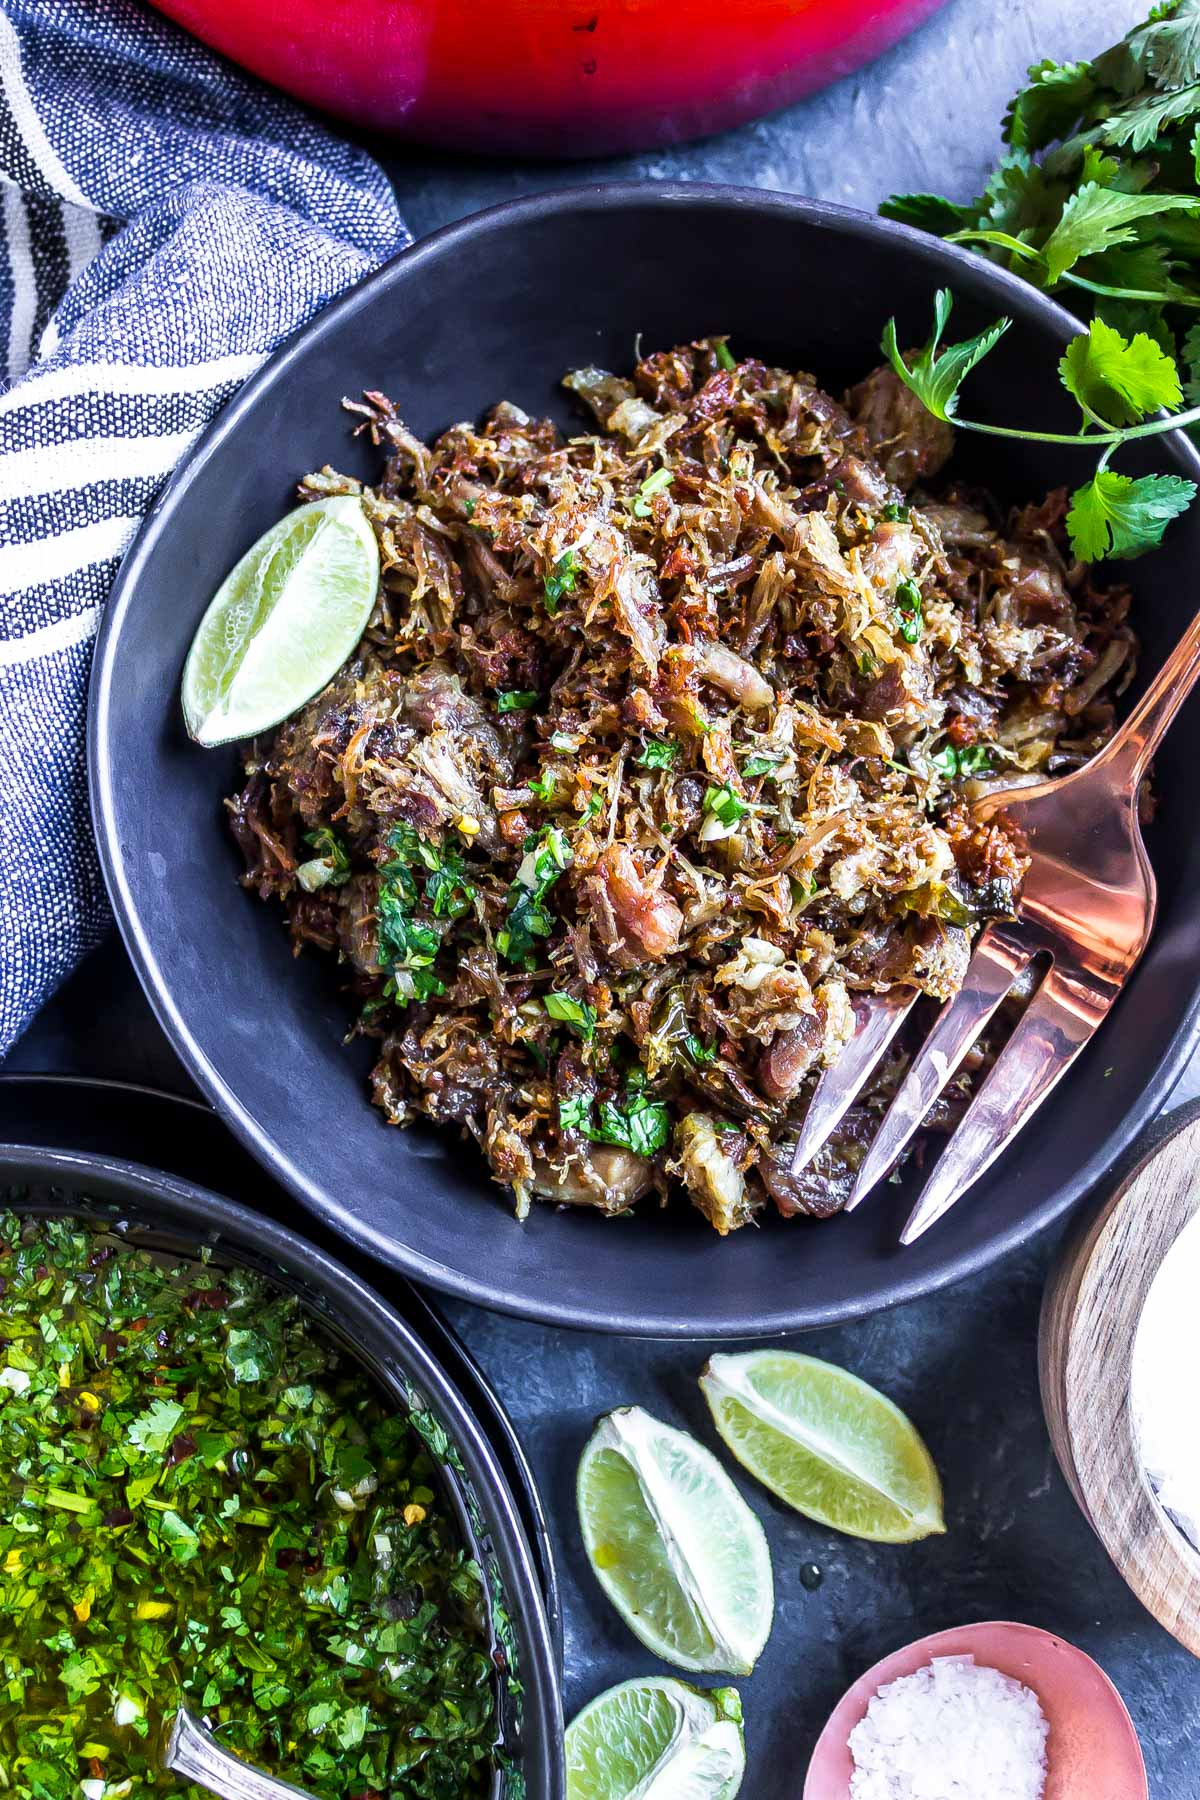 These crispy Keto Carnitas are the perfect protein option for a keto diet as the ratio is about 75% fat to 25% protein. Feel free to scale the recipe to make more or less, we vote for more since this is a great meal prep option to have on hand for easy meals.   #lowcarb     #lowcarbrecipe     #ketorecipe     #keto     #lchf     #lchfdiet     #lchfrecipe     #easyrecipe     #summer     #pork    #ketodiet     #glutenfree     #atkins